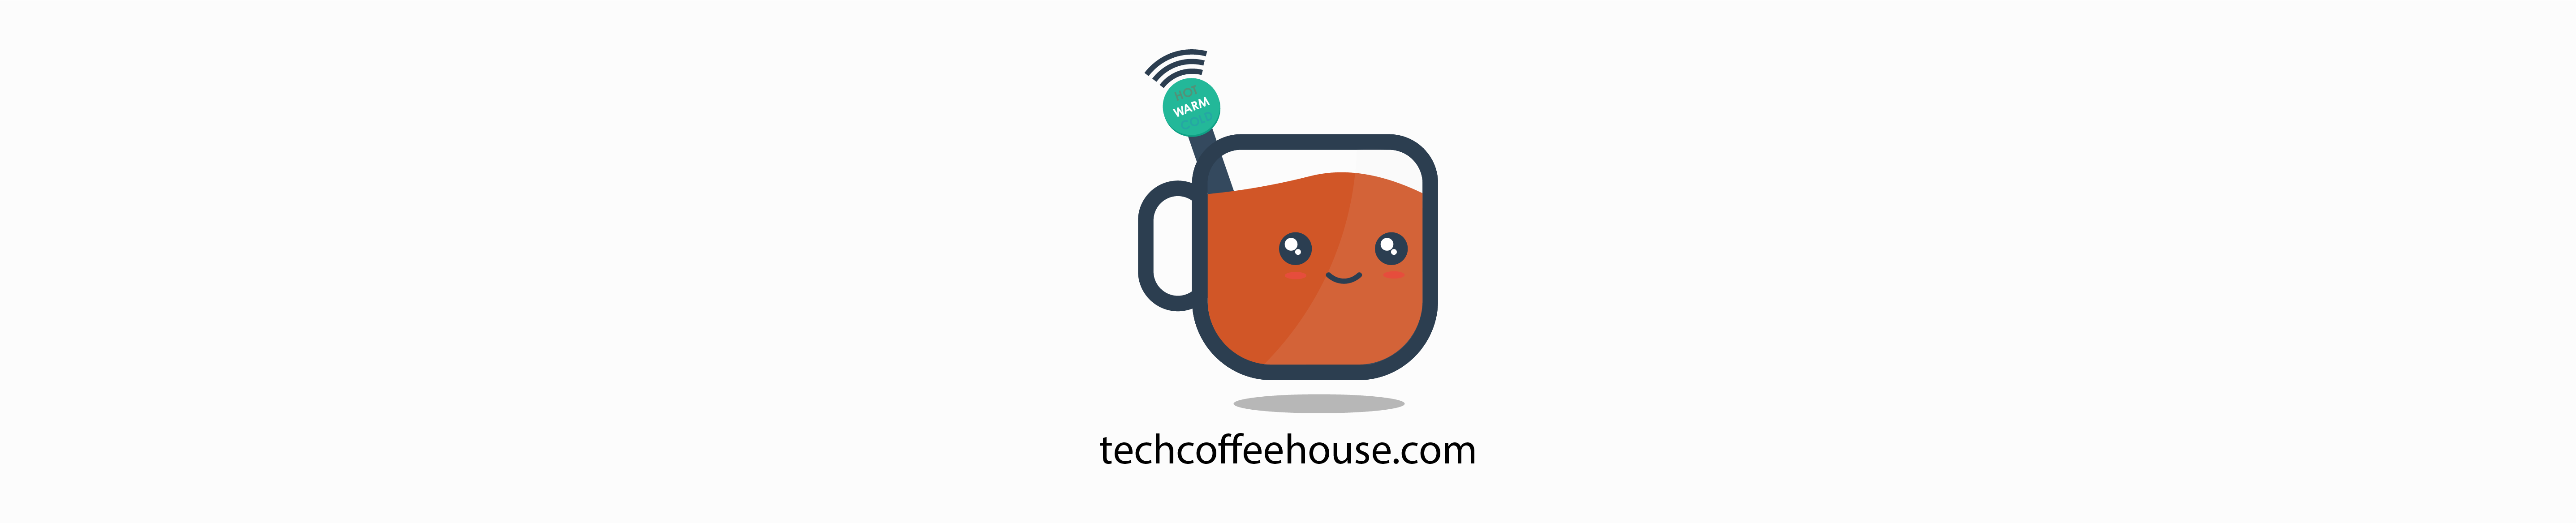 Tech Coffee House - Latest Singapore Tech News and Reviews